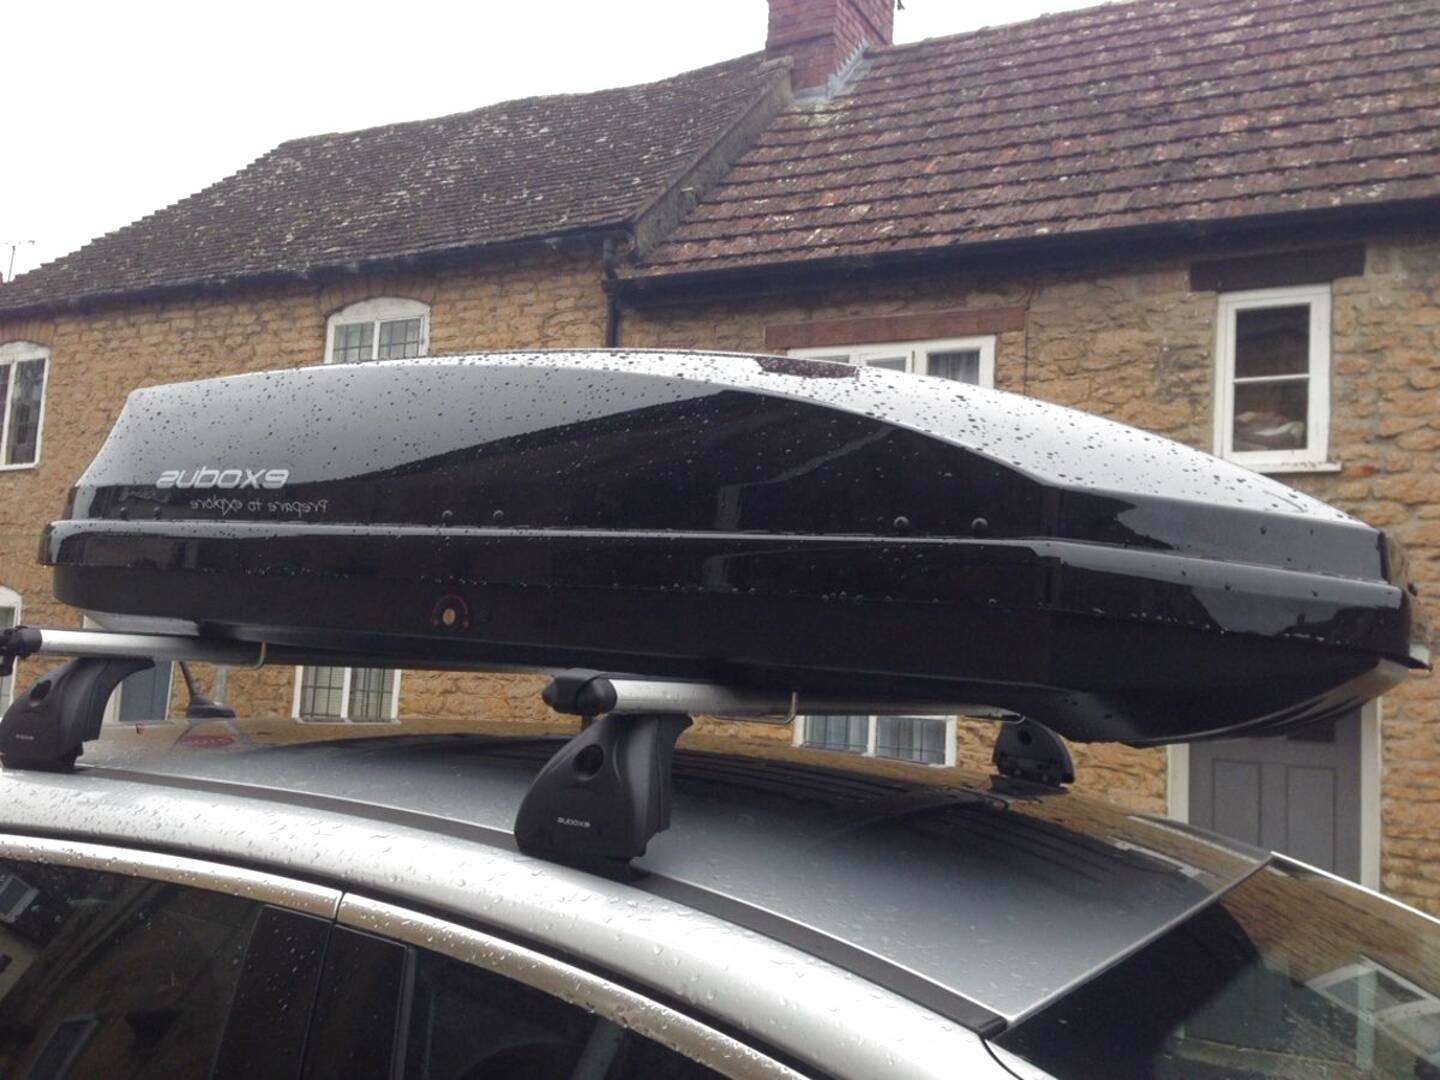 exodus roof box for sale